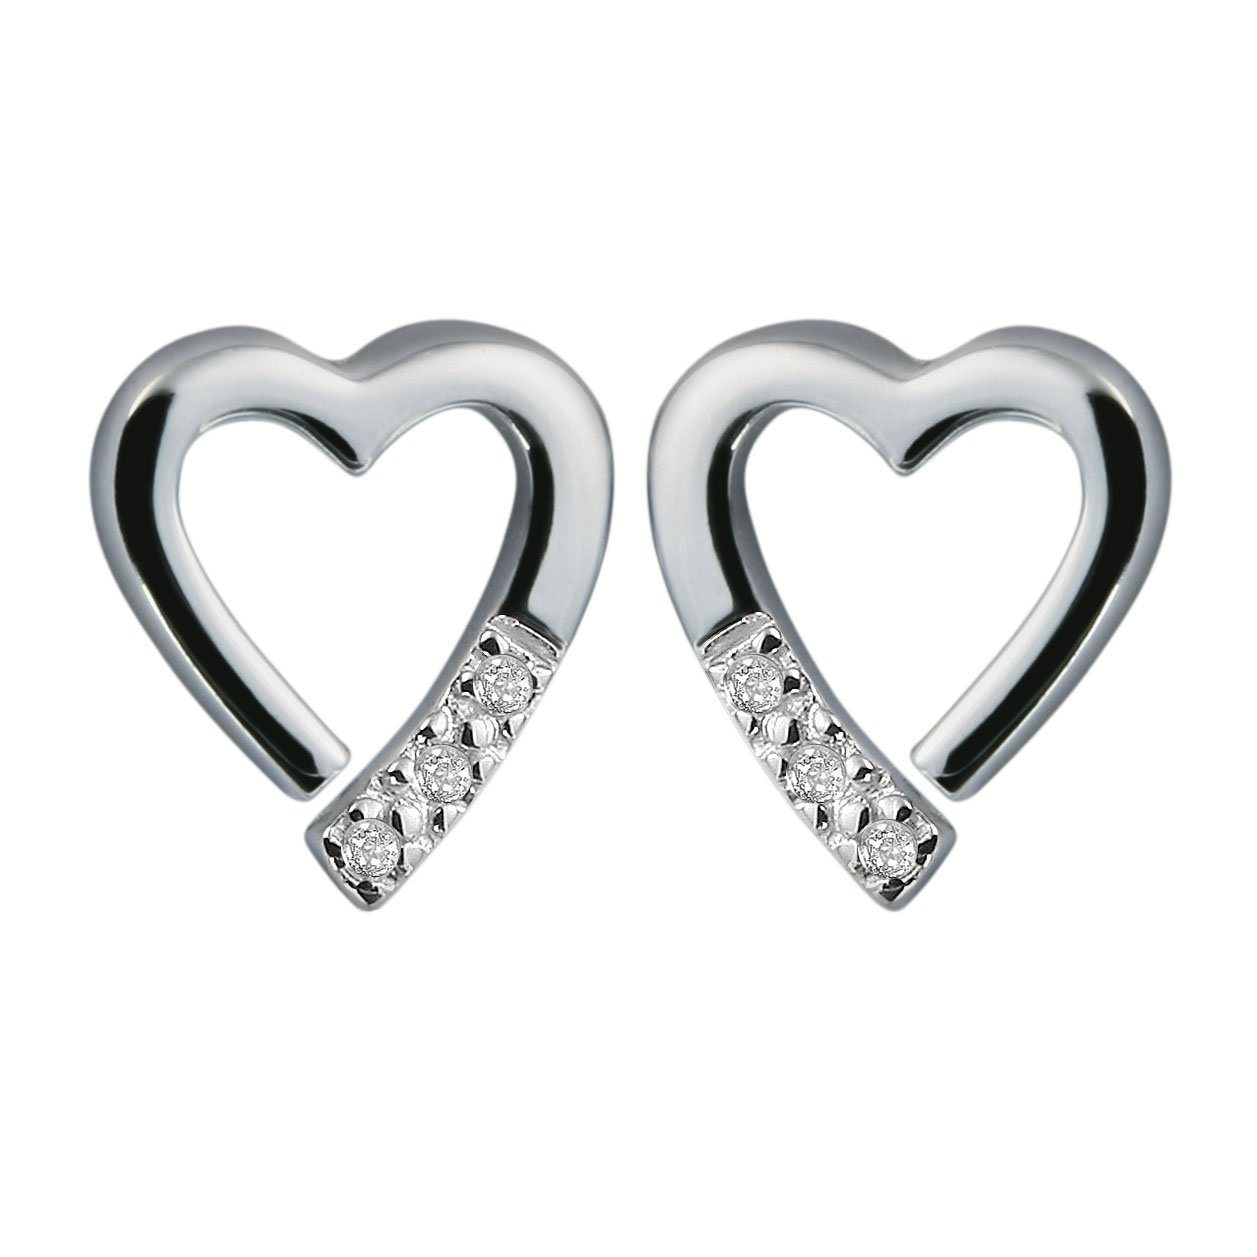 Hot Diamonds Memories Earrings with Diamond Jewellery Hot Diamonds